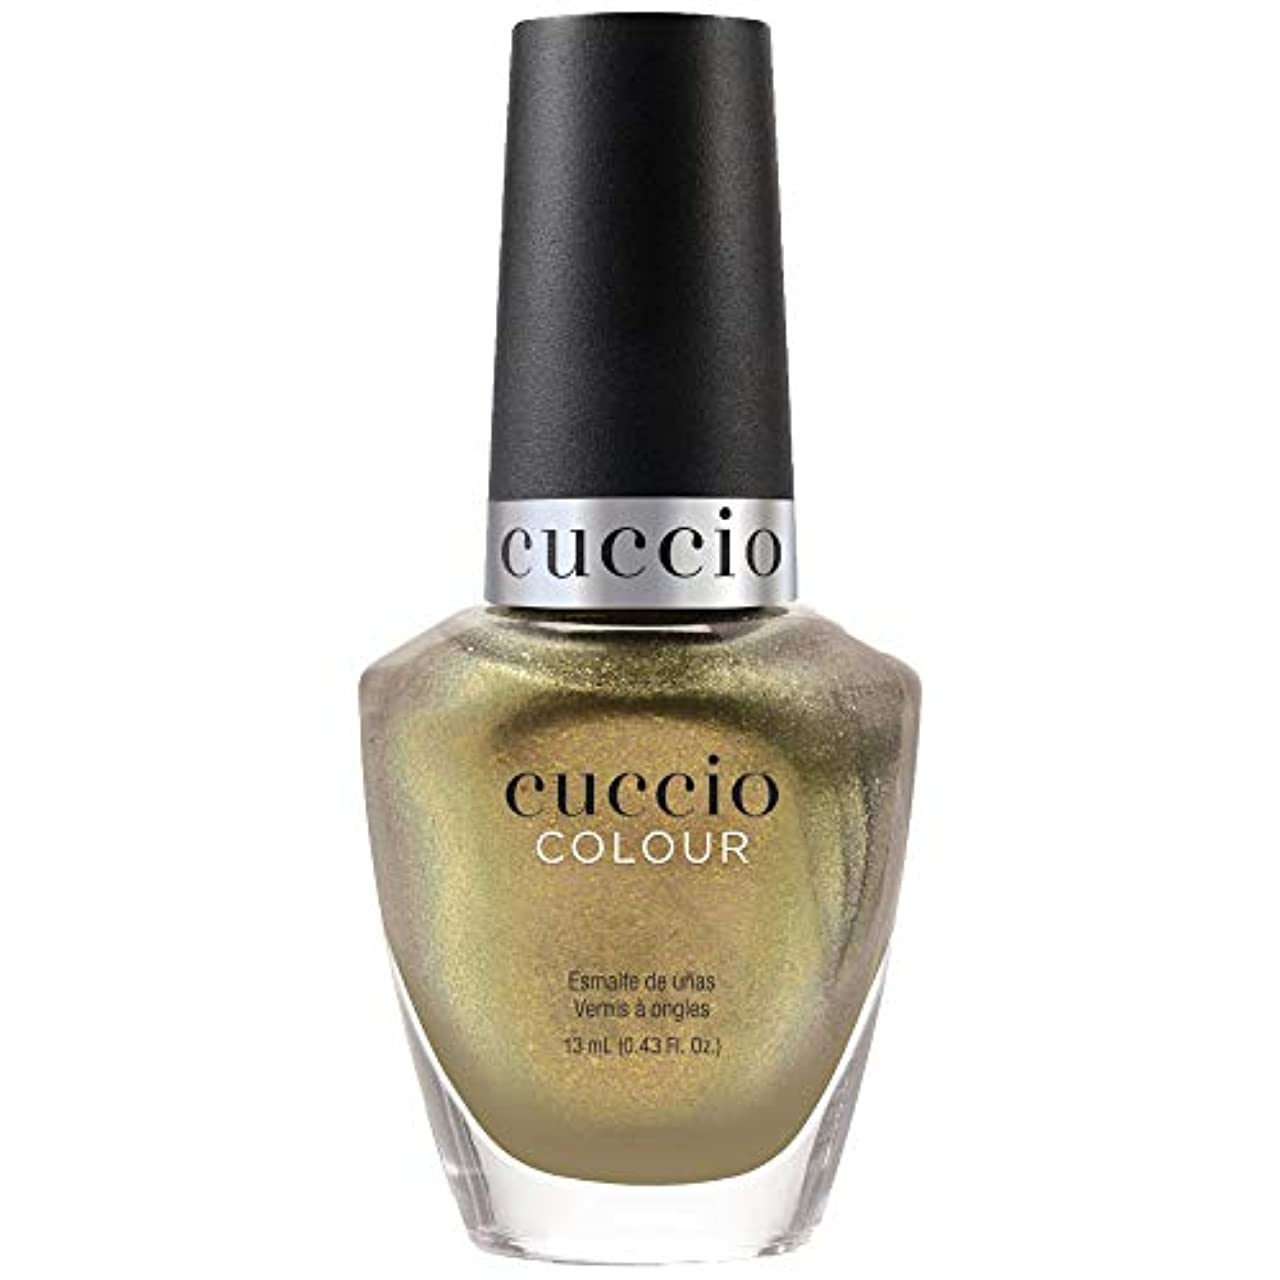 Cuccio Colour Nail Lacquer - Tapestry Collection - You're Sew Special - 13 mL / 0.43 oz